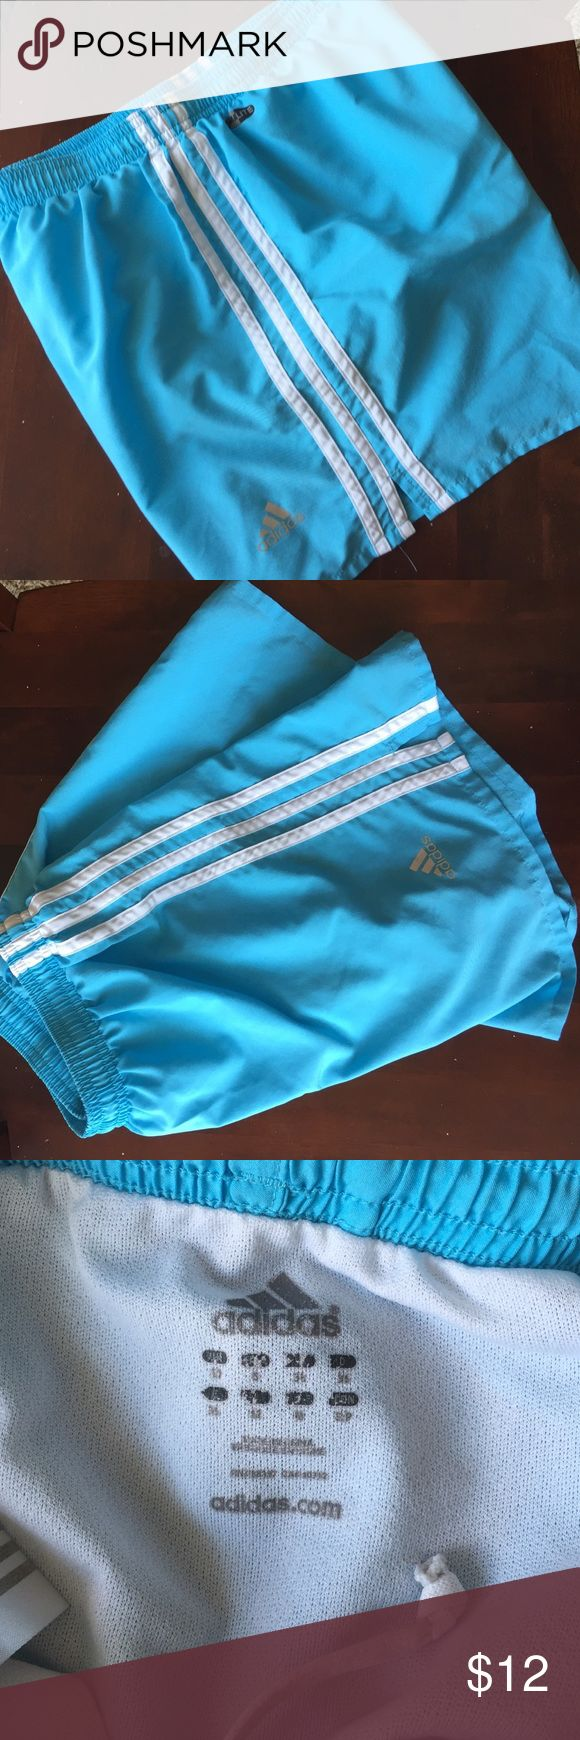 Light blue adidas shorts Light blue adidas shorts, size small. Only area that looks worn is the inside tag (see image). Otherwise, like new! adidas Shorts